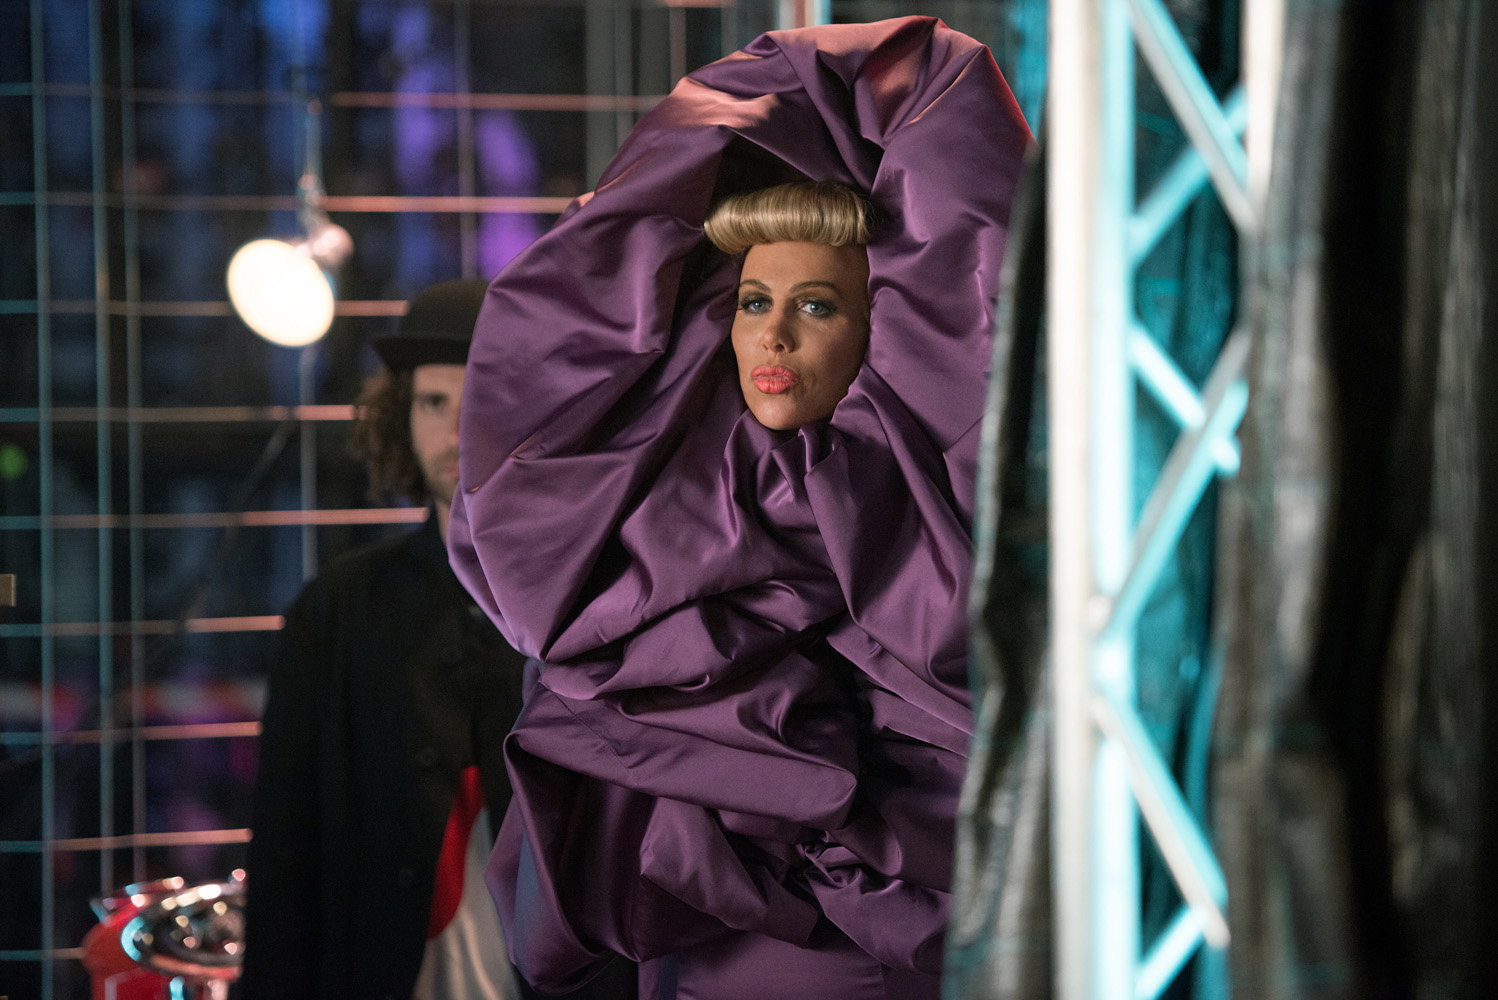 Fashion Villains Mugatu Alexanya Join Forces In Zoolander 2 Tendencies Kaos Jedi Saves Hitam S A Magnate So Cherished And Revered That She Appears To Float Instead Of Walk Walking Is Just Regular Dictates All Things